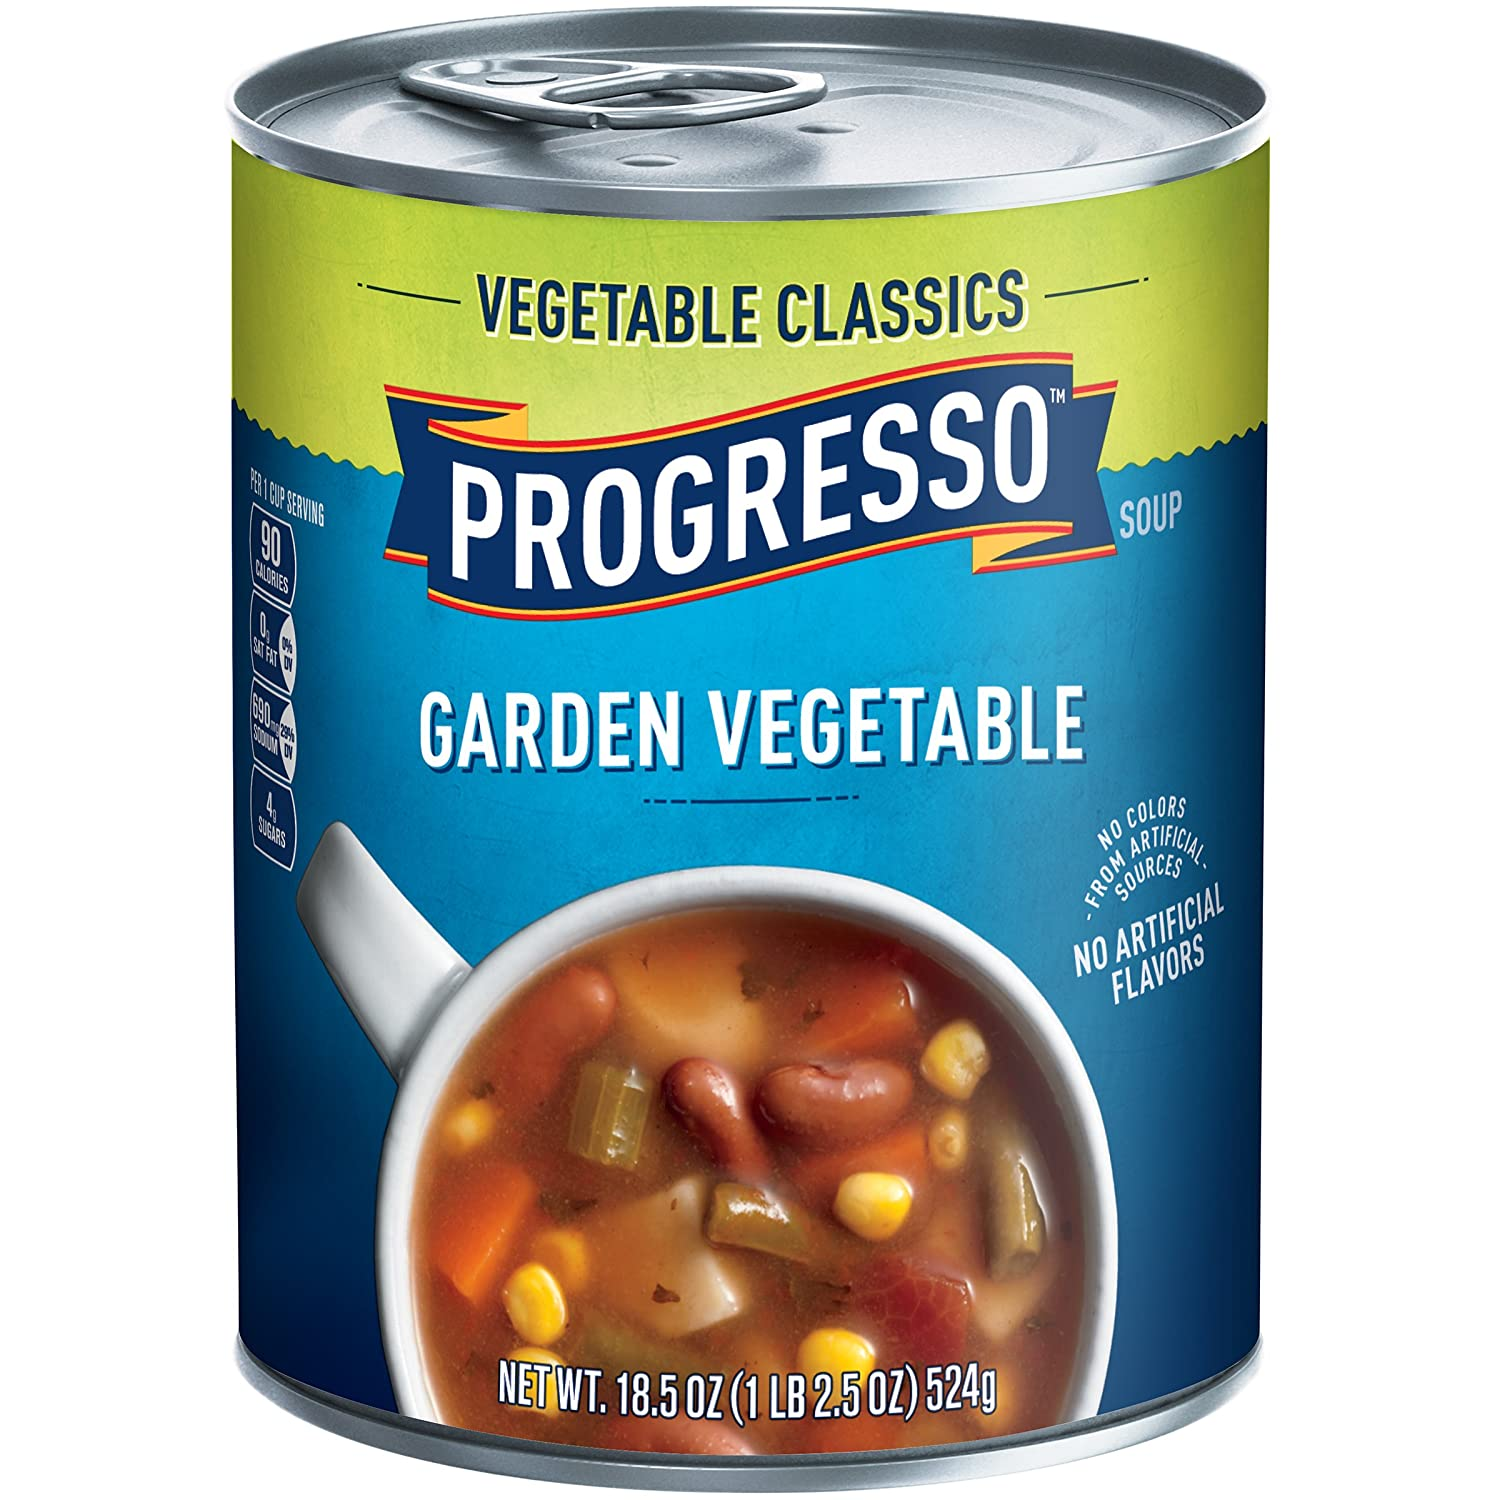 Progresso Vegetable Classics Soup, Garden Vegetable, 18.5-Ounce Cans (Pack of 6)